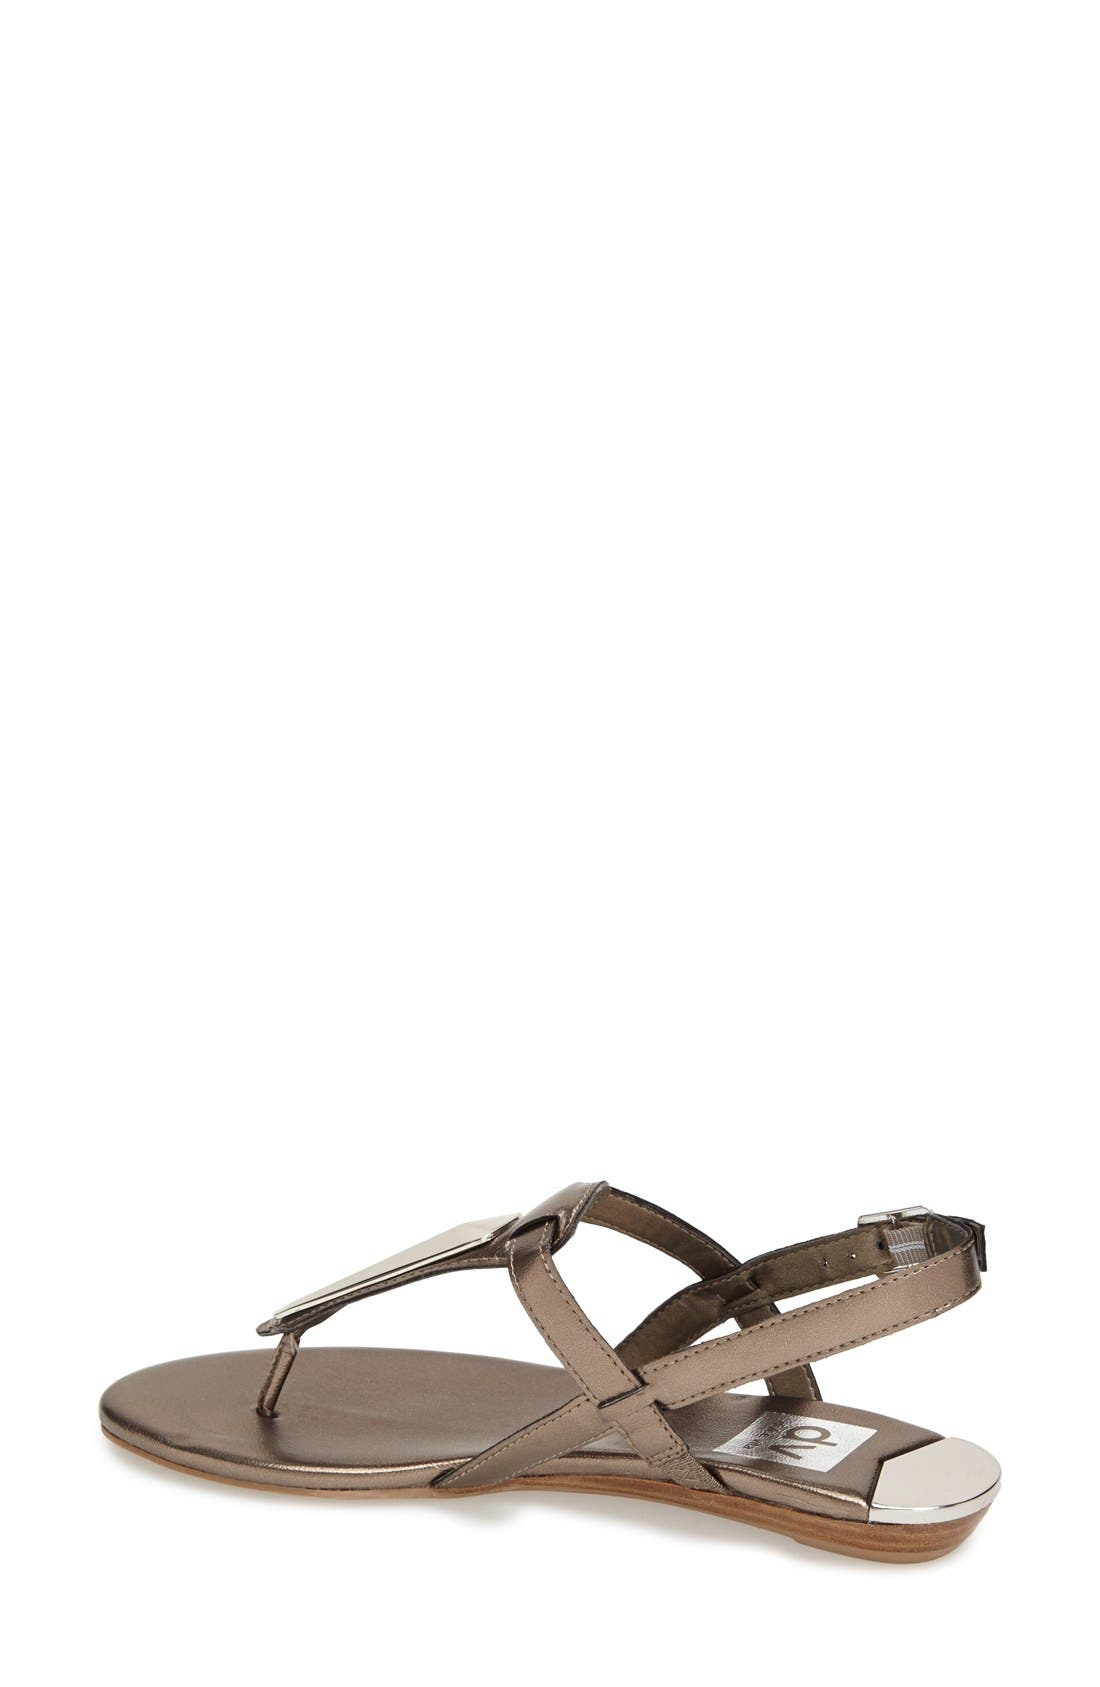 Alternate Image 2  - DV by Dolce Vita 'Allura' Thong Sandal (Women)